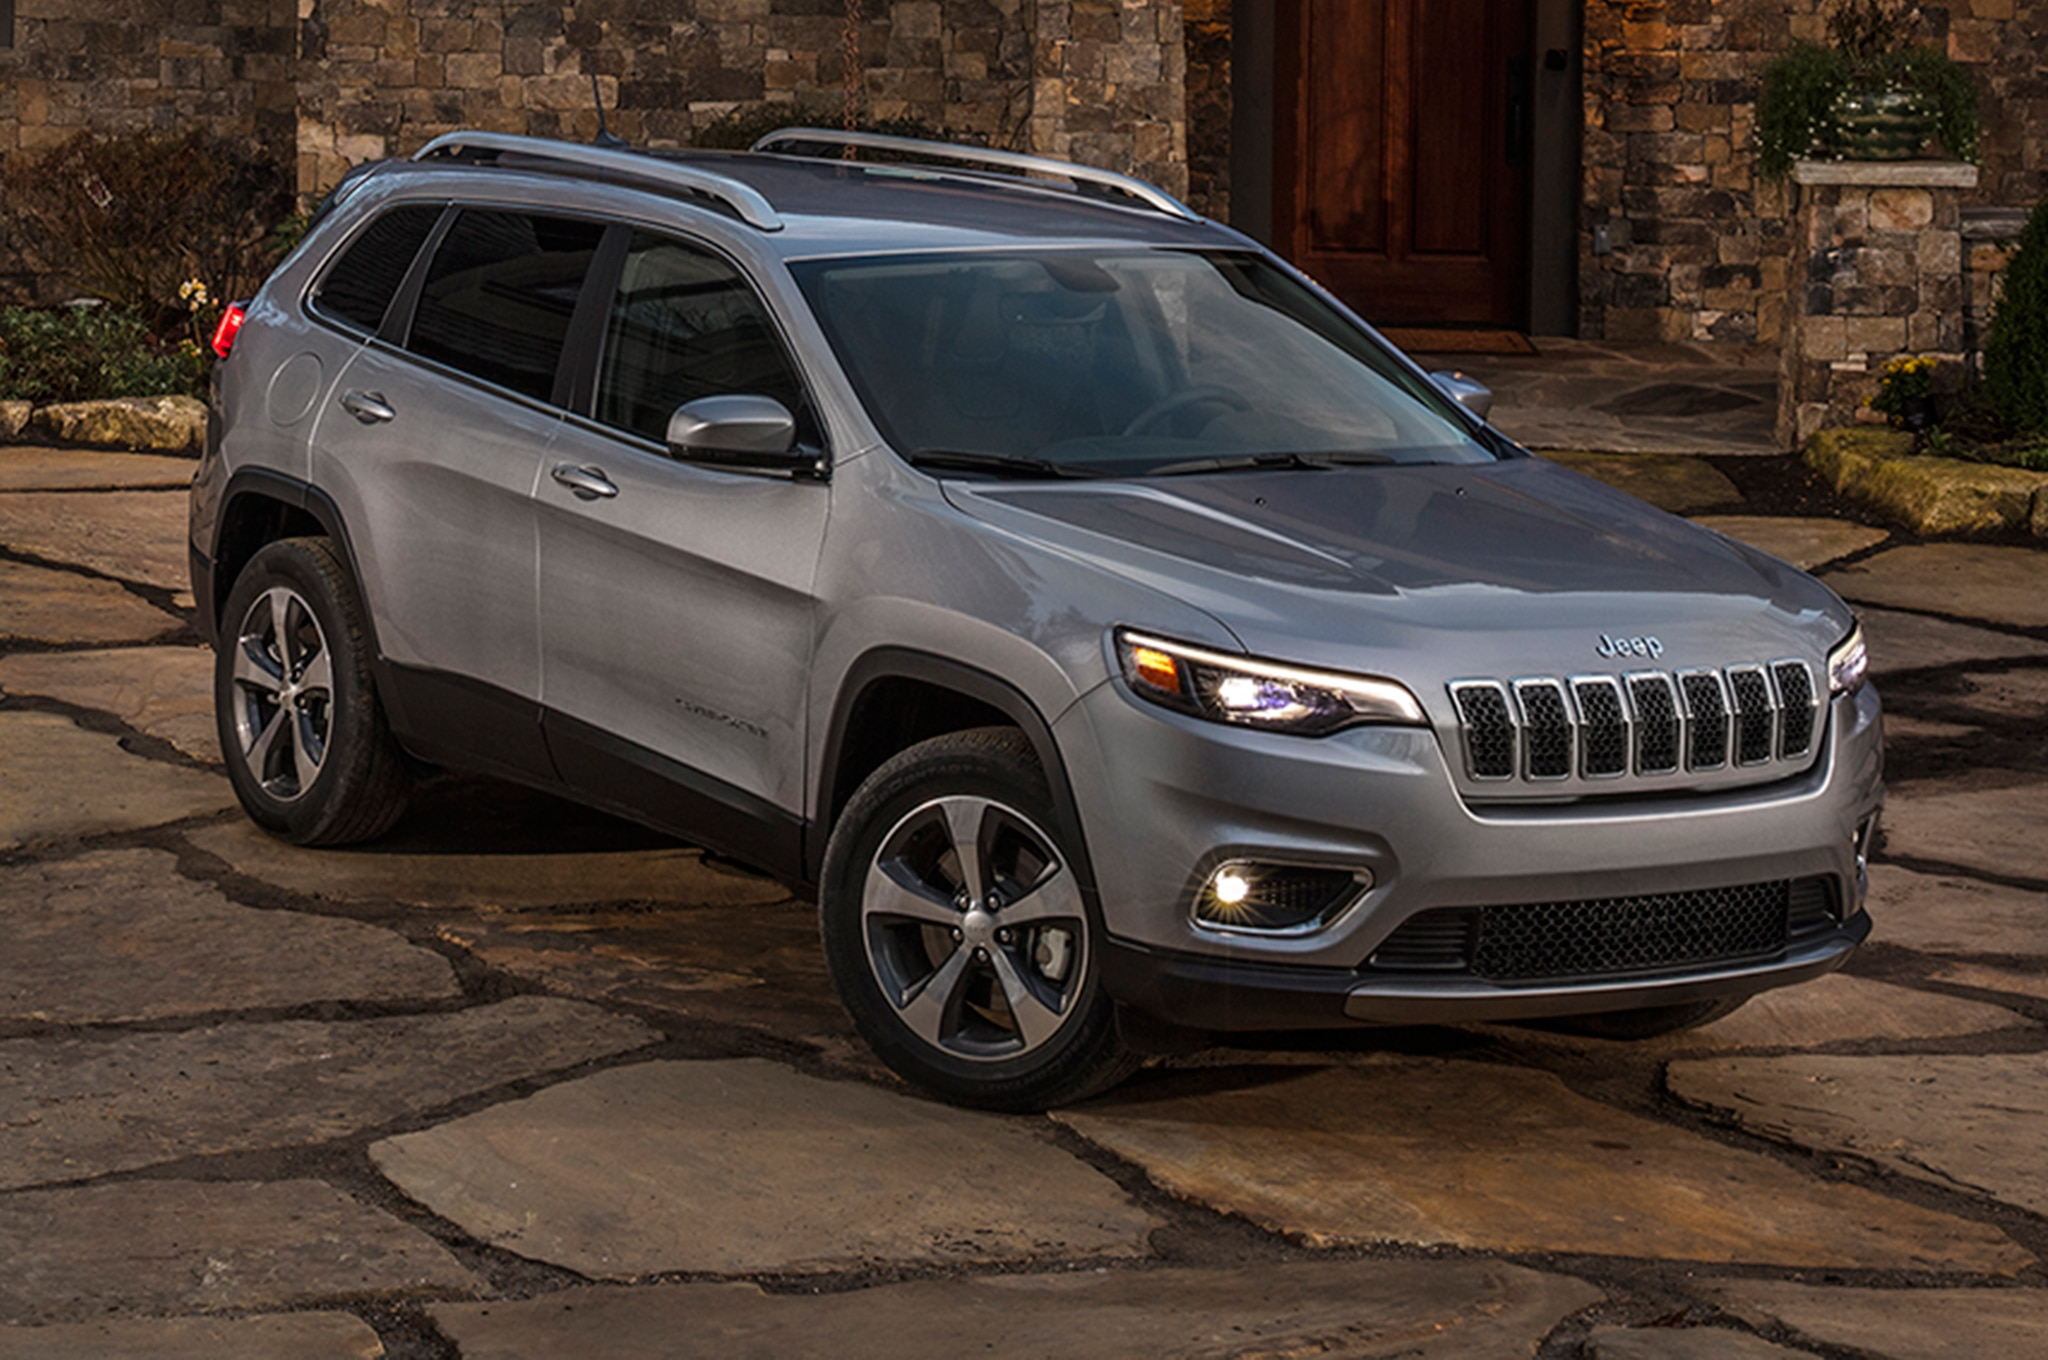 85 All New 2019 Jeep Trail Hawk Model